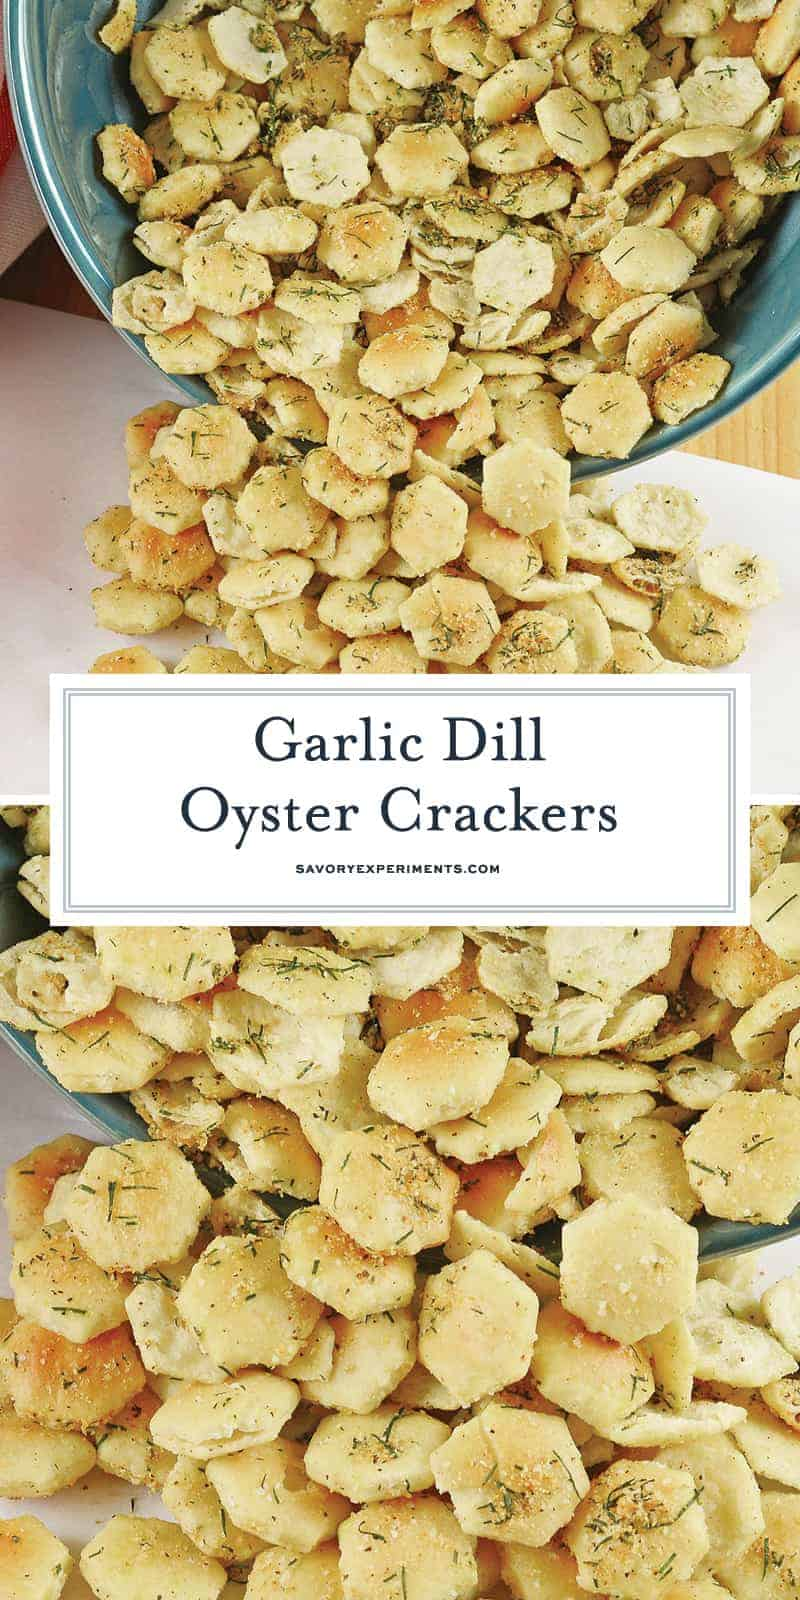 Collage of Garlic Dill Oyster Crackers for Pinterest